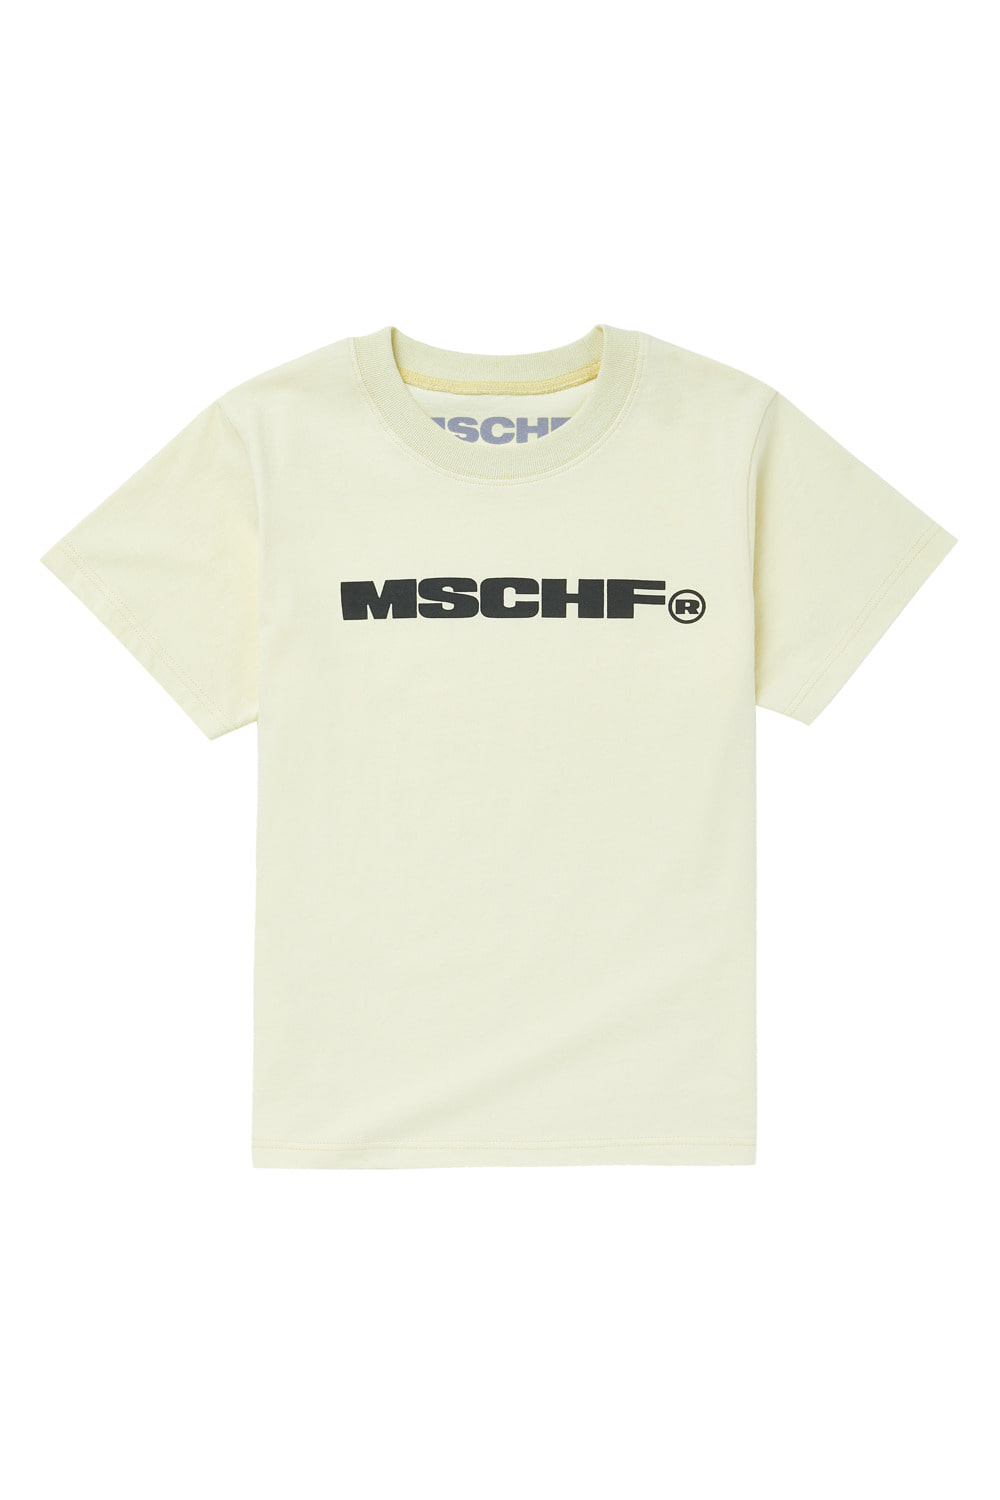 MSCHF_ROUNDED BASIC_pastel yellow